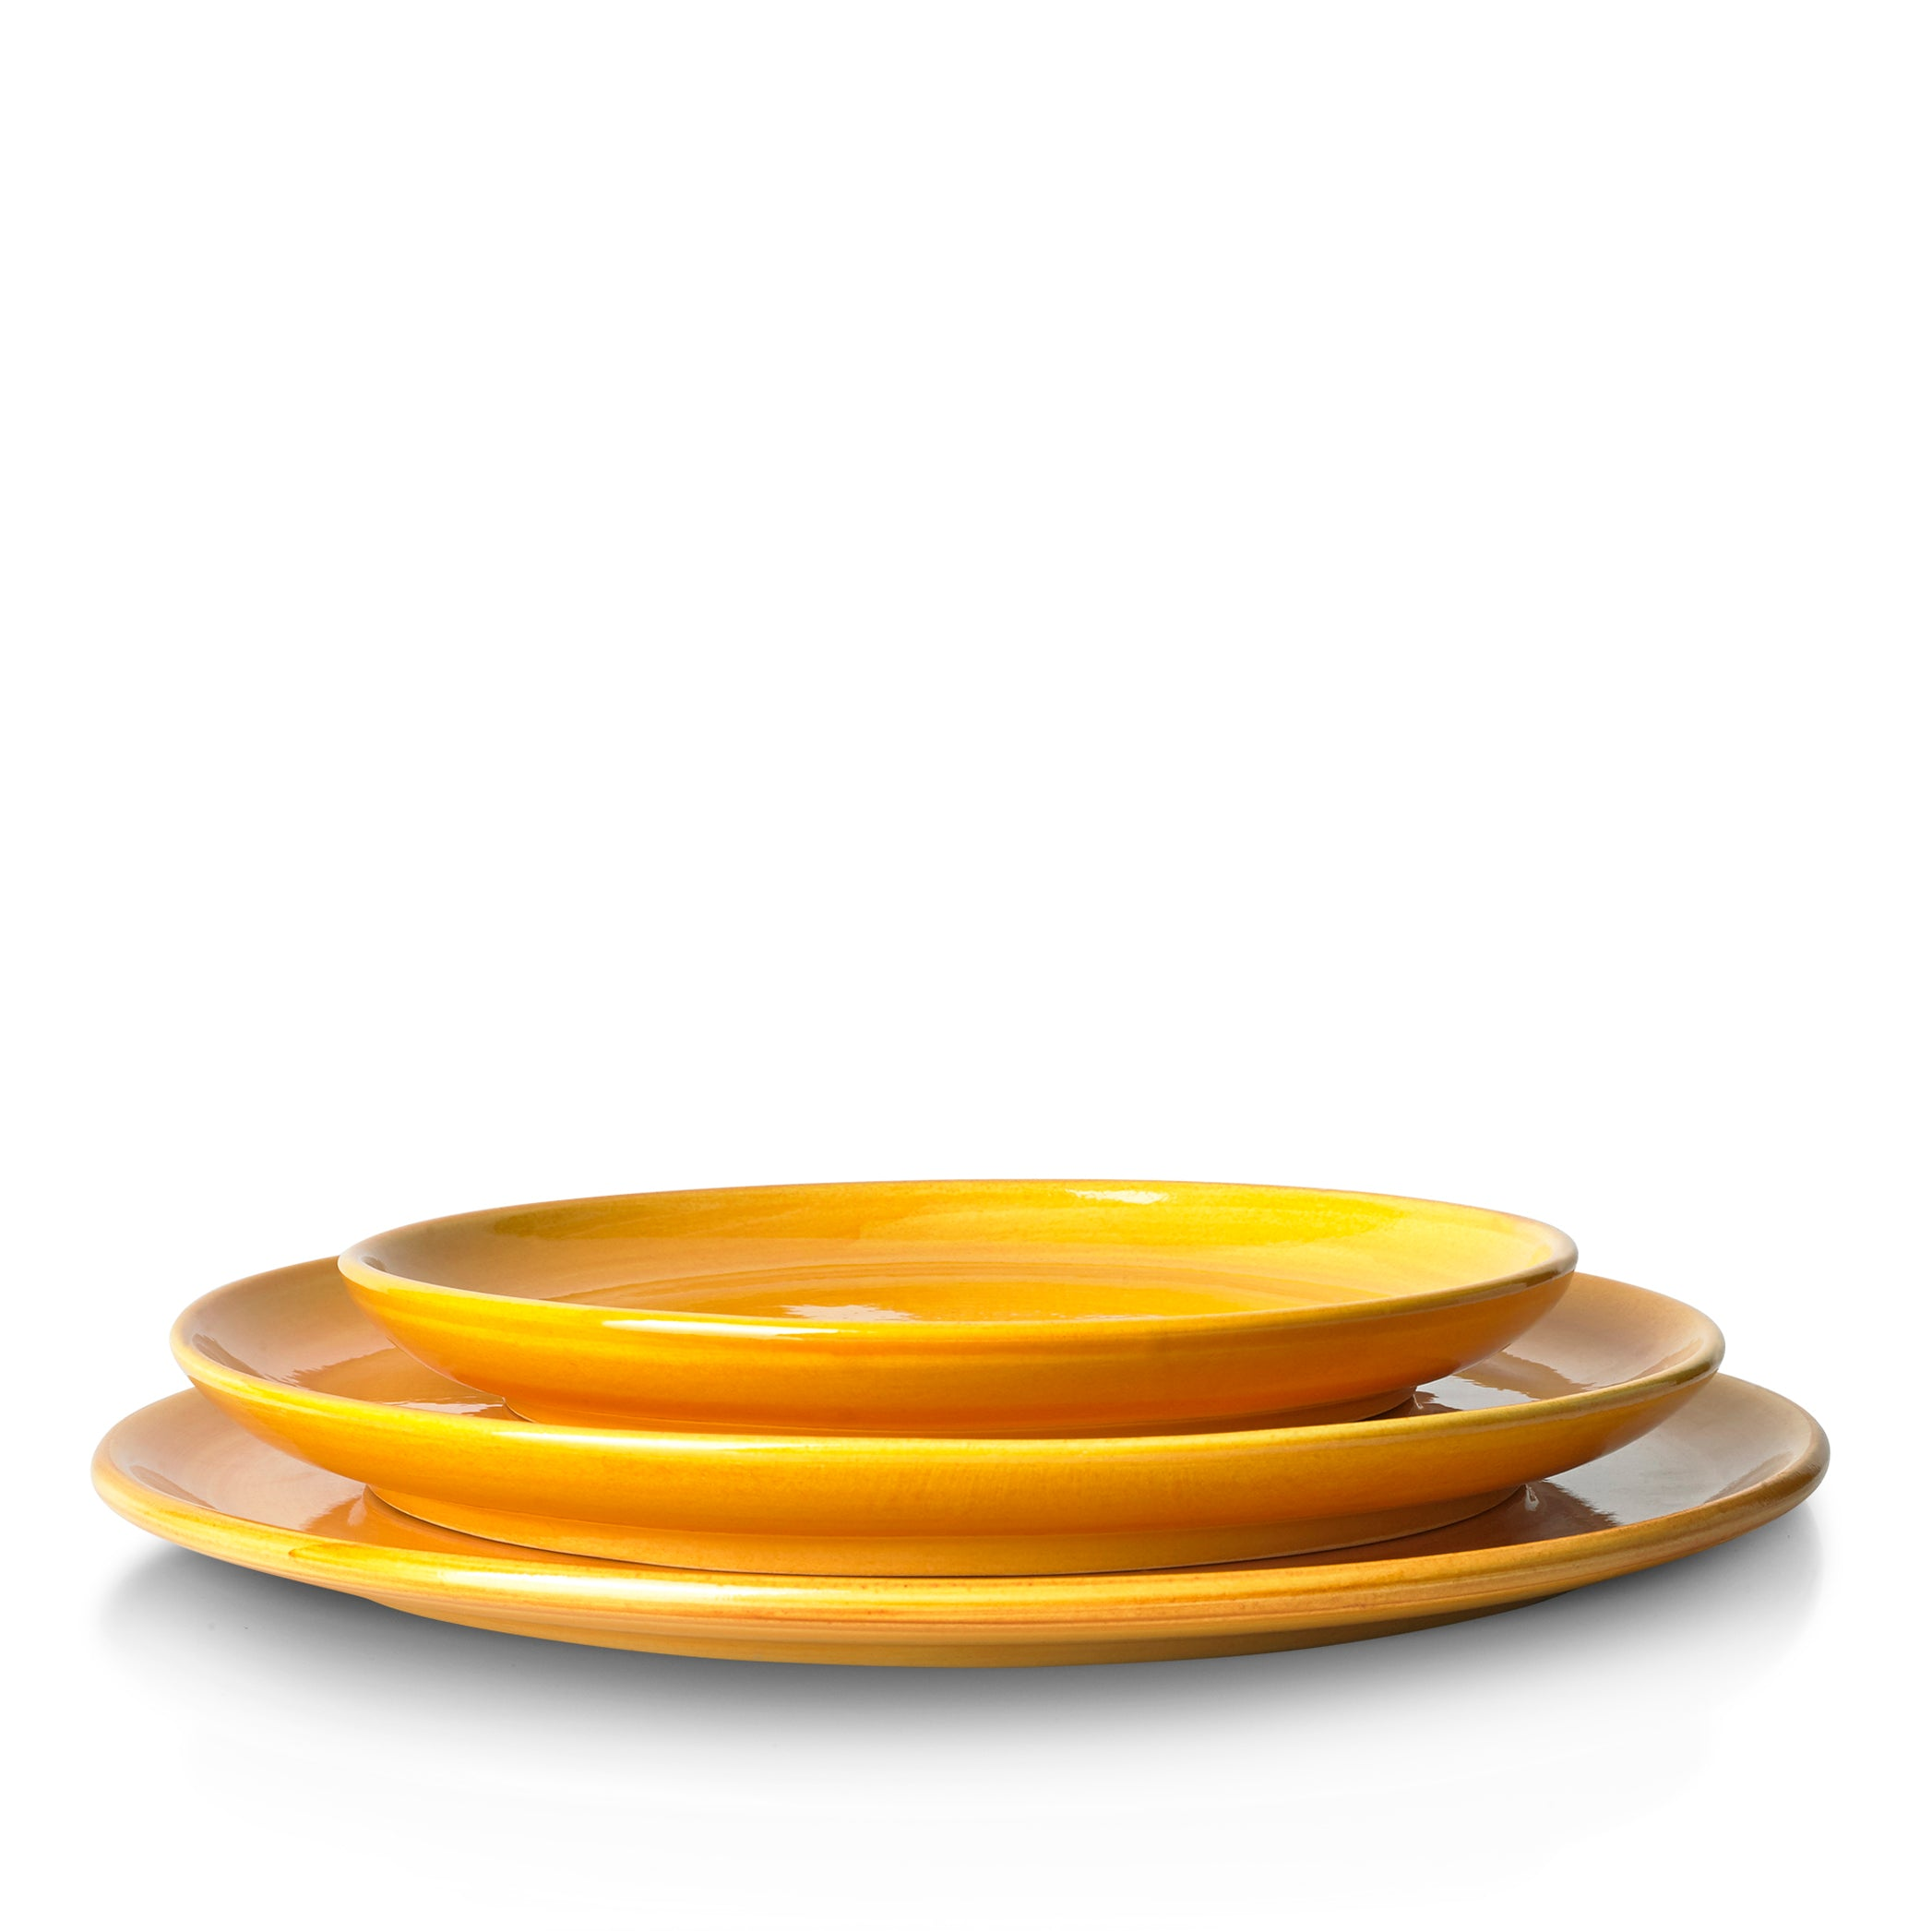 "S&B ""La Couronne"" 20cm Ceramic Side Plate in Yellow"